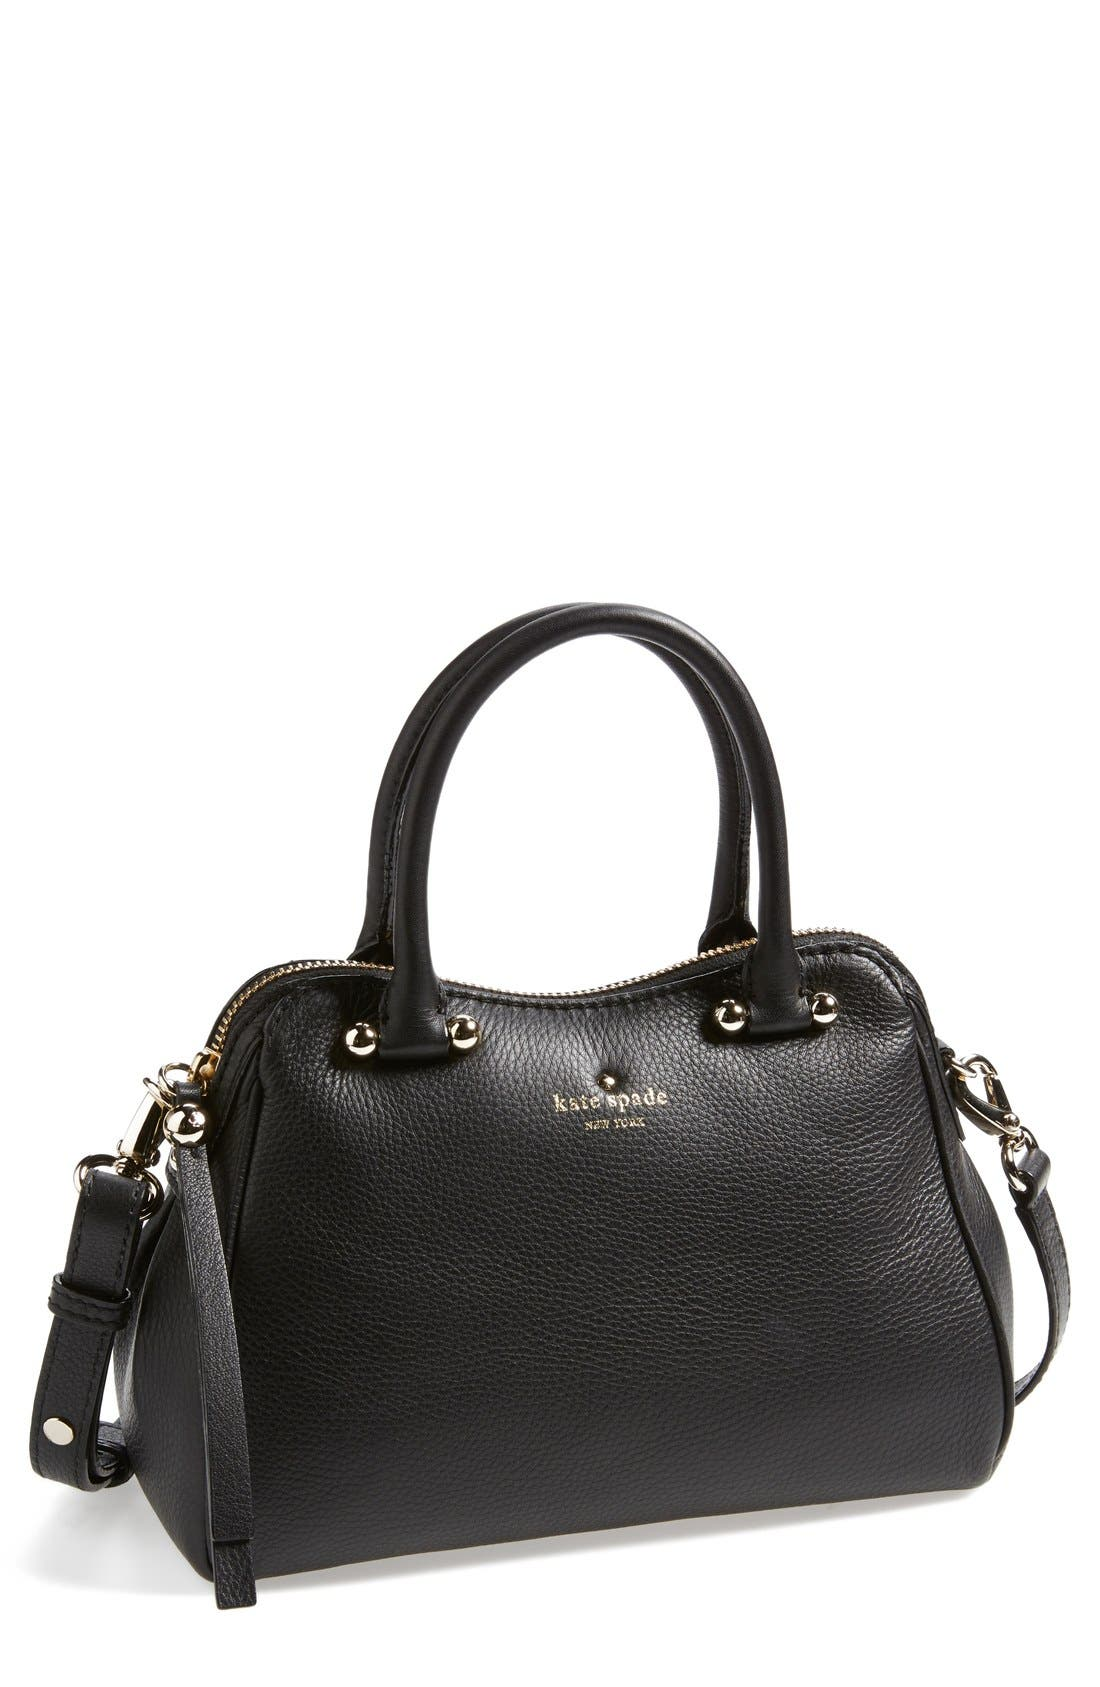 Main Image - kate spade new york 'charles street - mini audrey' leather satchel